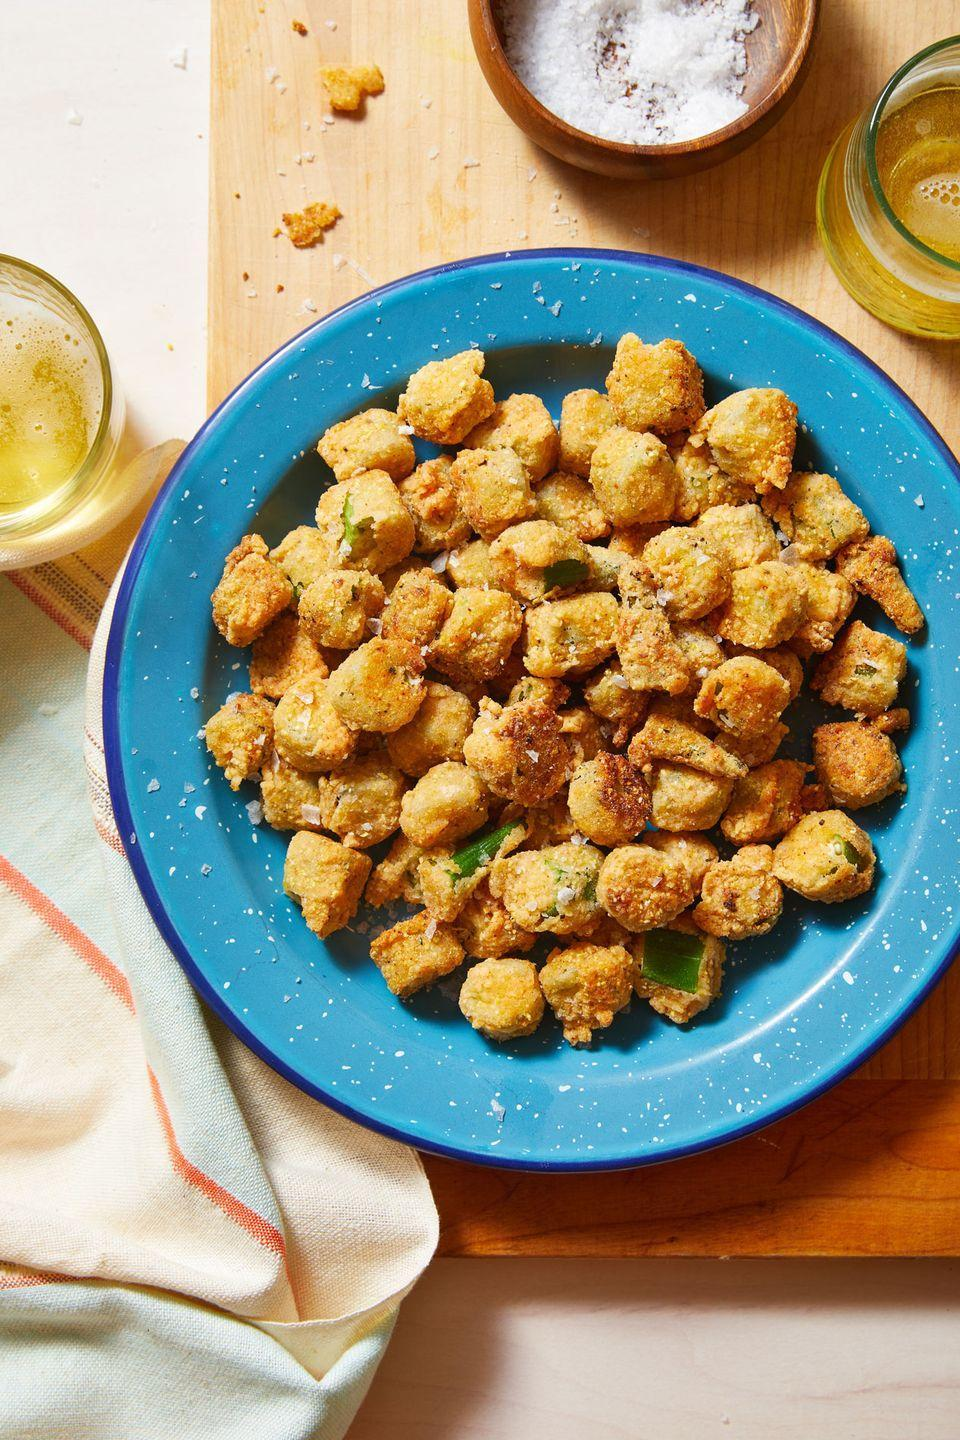 """<p>If you're unfamiliar with okra, this is an amazing way to acquaint yourself.</p><p>Get the recipe from <a href=""""https://www.delish.com/cooking/recipe-ideas/a33624788/fried-okra-recipe/"""" rel=""""nofollow noopener"""" target=""""_blank"""" data-ylk=""""slk:Delish"""" class=""""link rapid-noclick-resp"""">Delish</a>.</p>"""